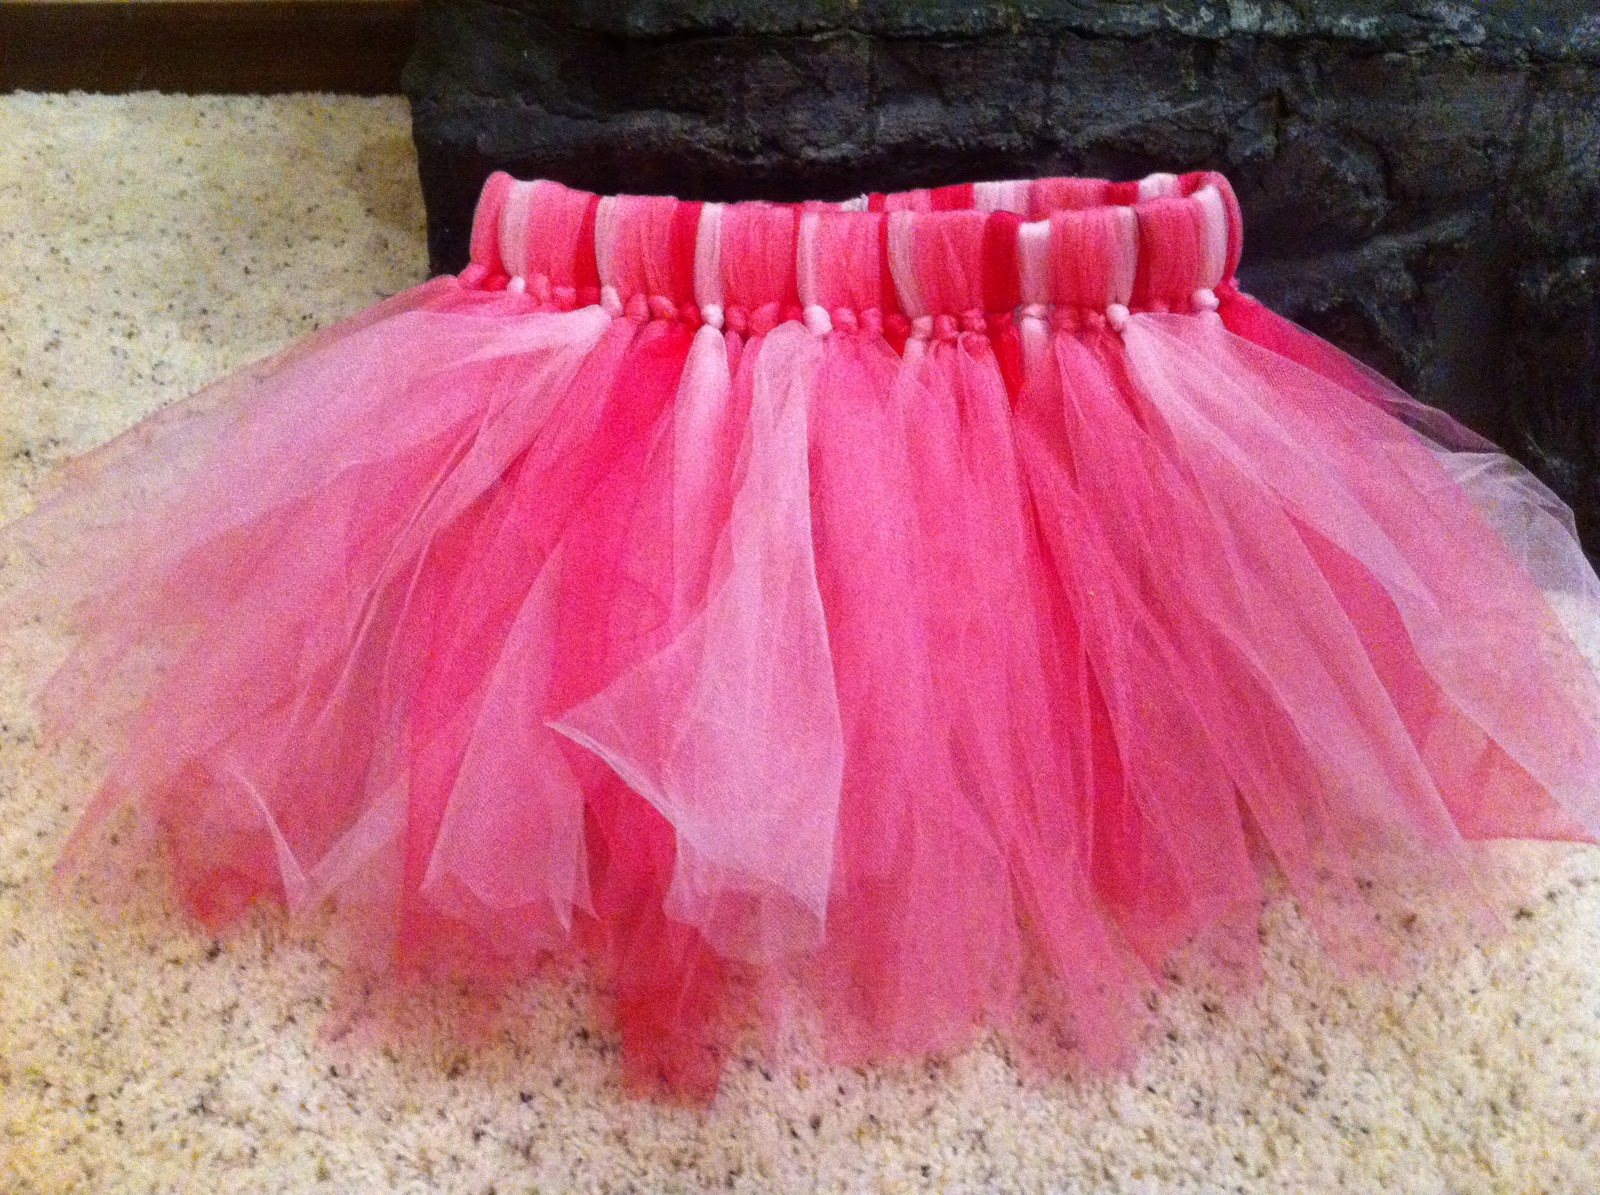 DIY Valentine's Day Projects: Tulle Skirt | Your Retail Helper